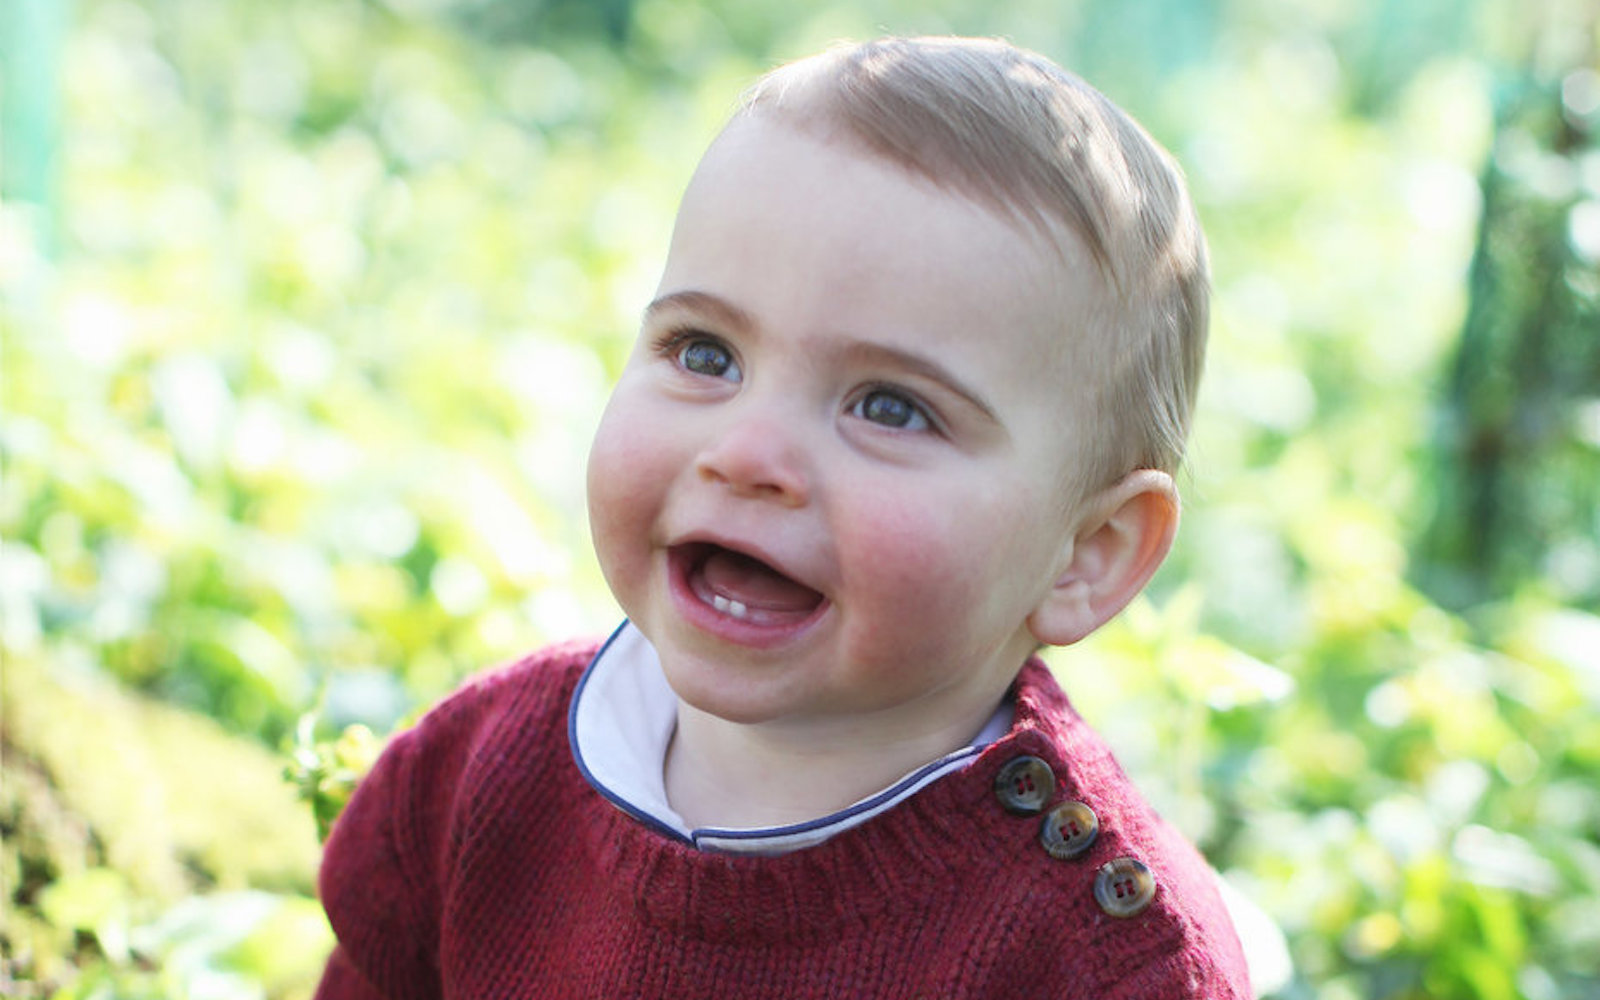 Kate Middleton Just Released Adorable New Photos of Prince Louis to Celebrate His First Birthday